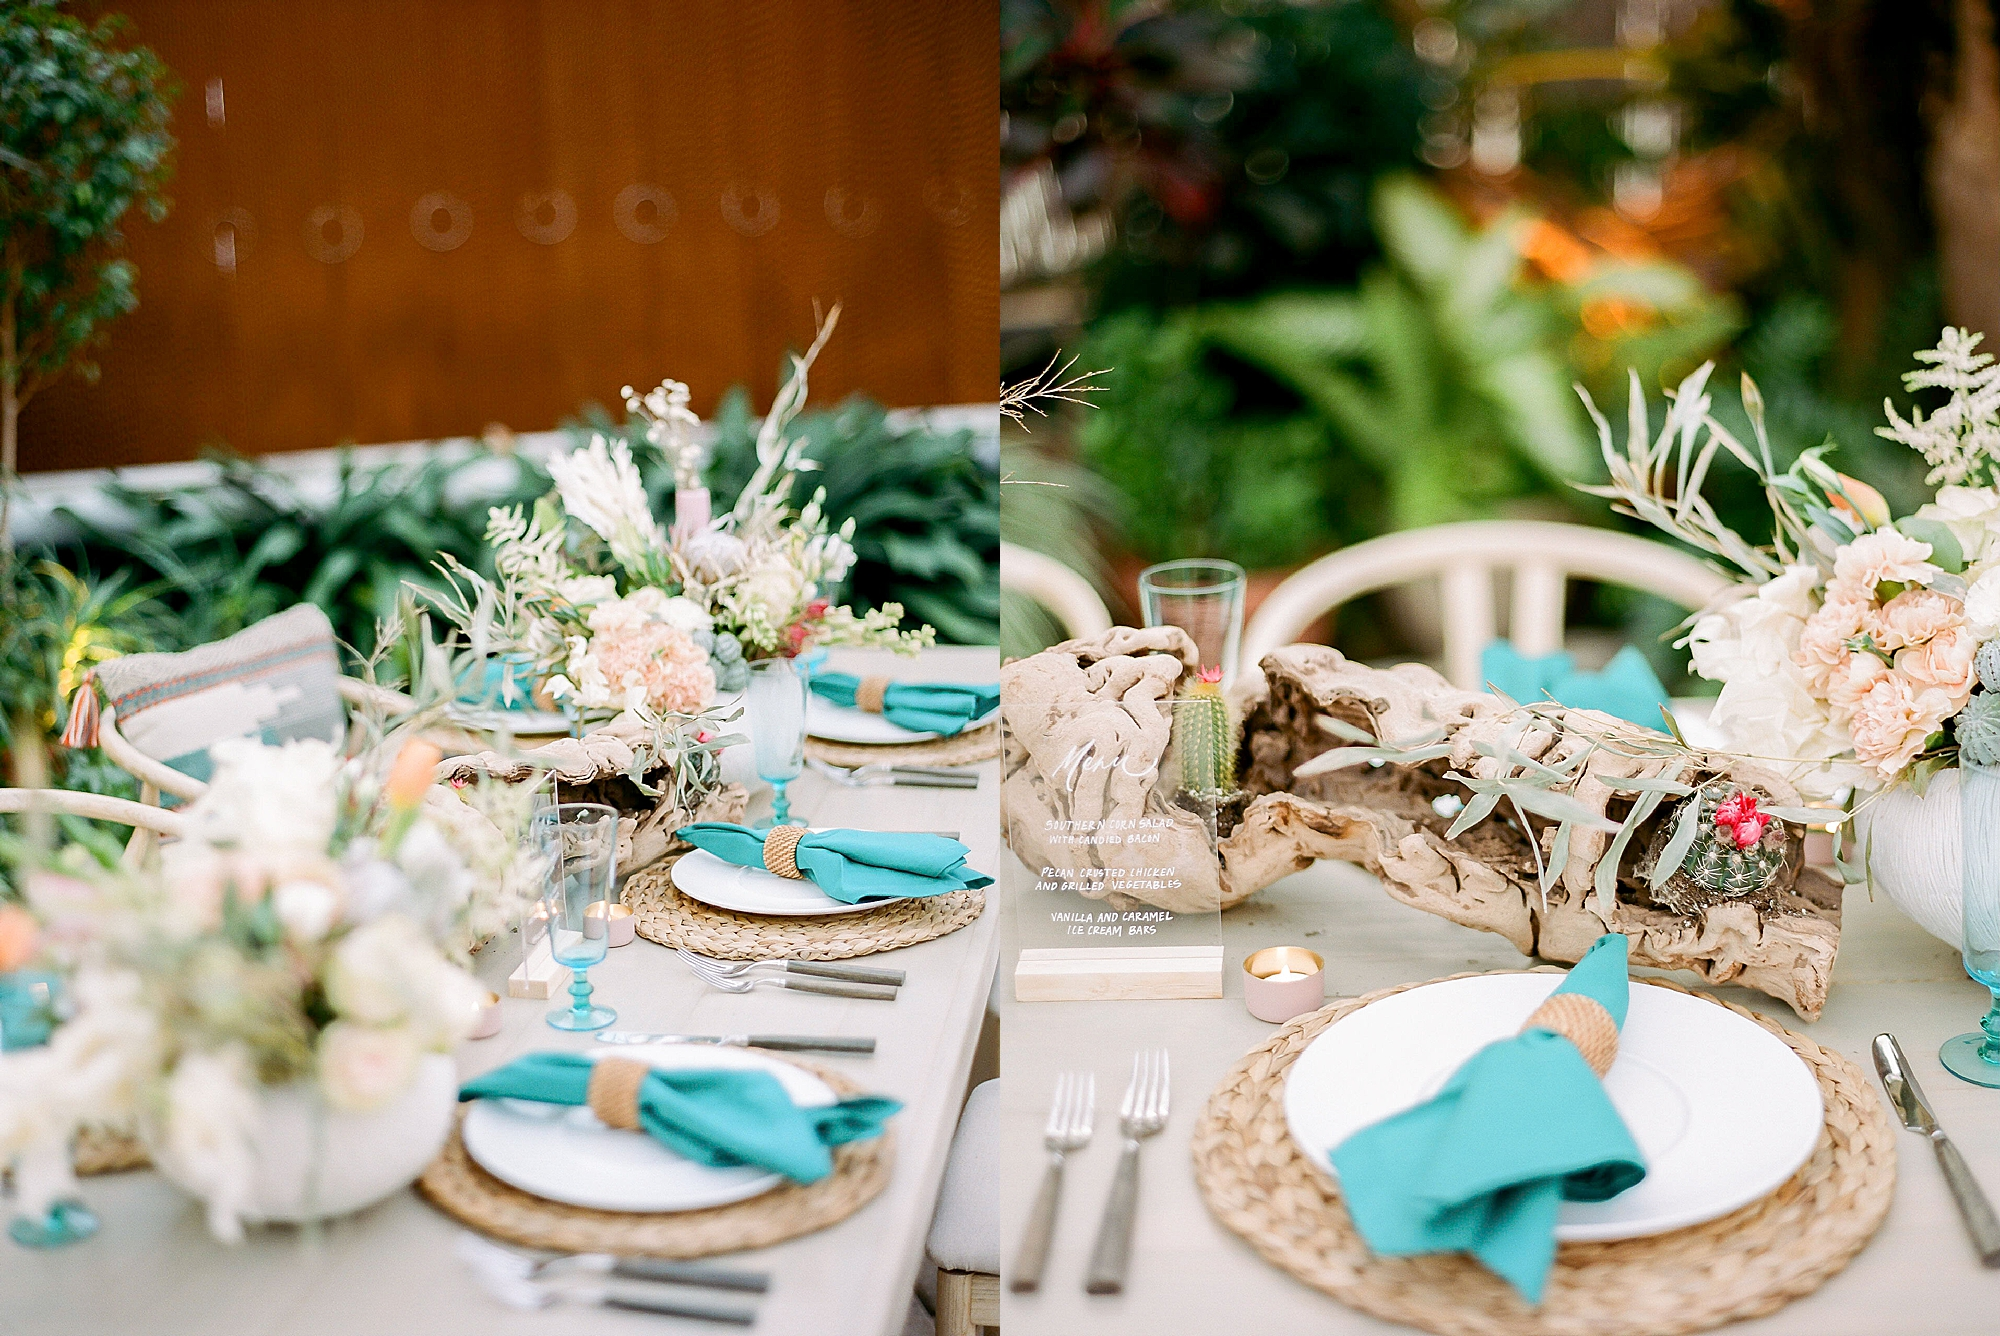 Colorful and Vibrant Wedding Photography at Fairmount Horticultural Center by Magdalena Studios 0036